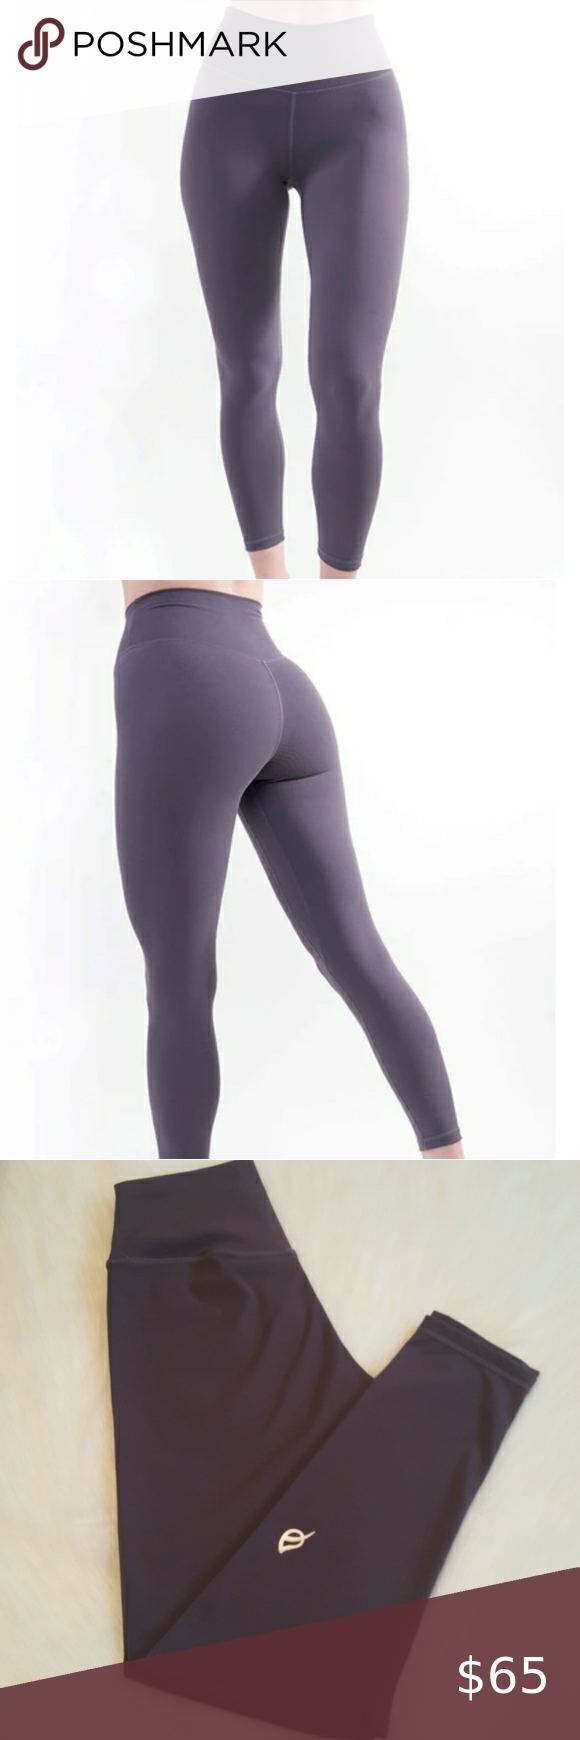 P Tula Taylor Legging 24 Purple Suede In 2020 Purple Suede Legging Pants For Women Very very cute leggings please i want to see more your pretty face. pinterest